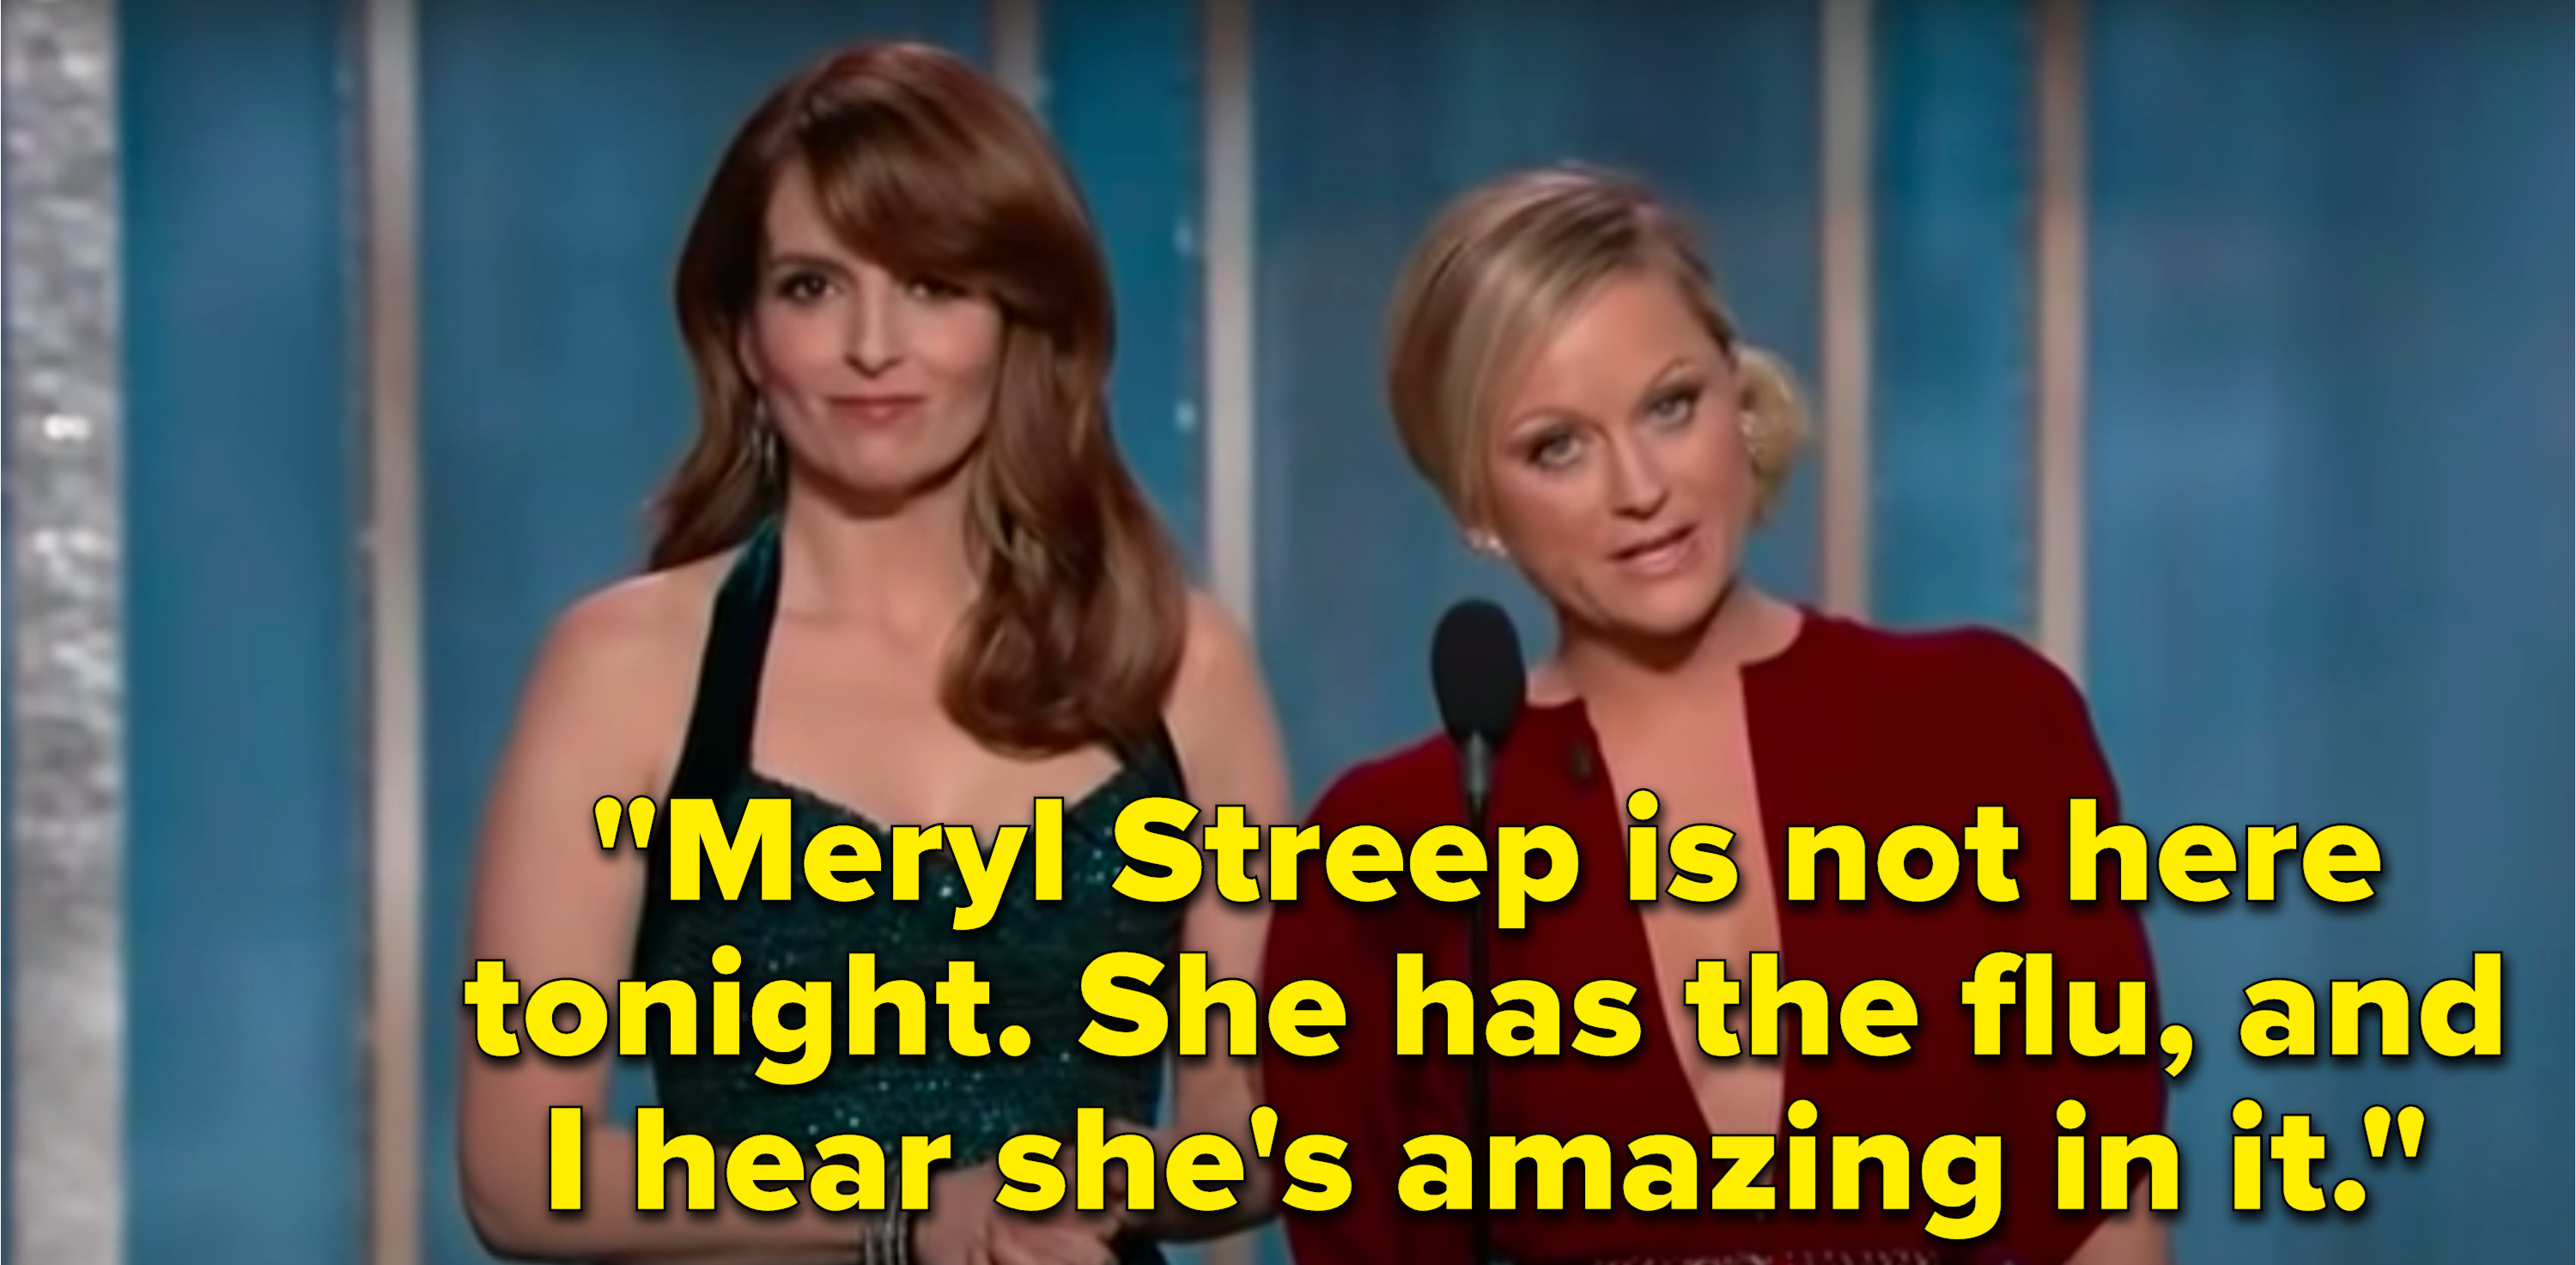 """Poehler says, """"Meryl Streep is not here tonight, she has the flu, and I hear she's amazing in it"""""""